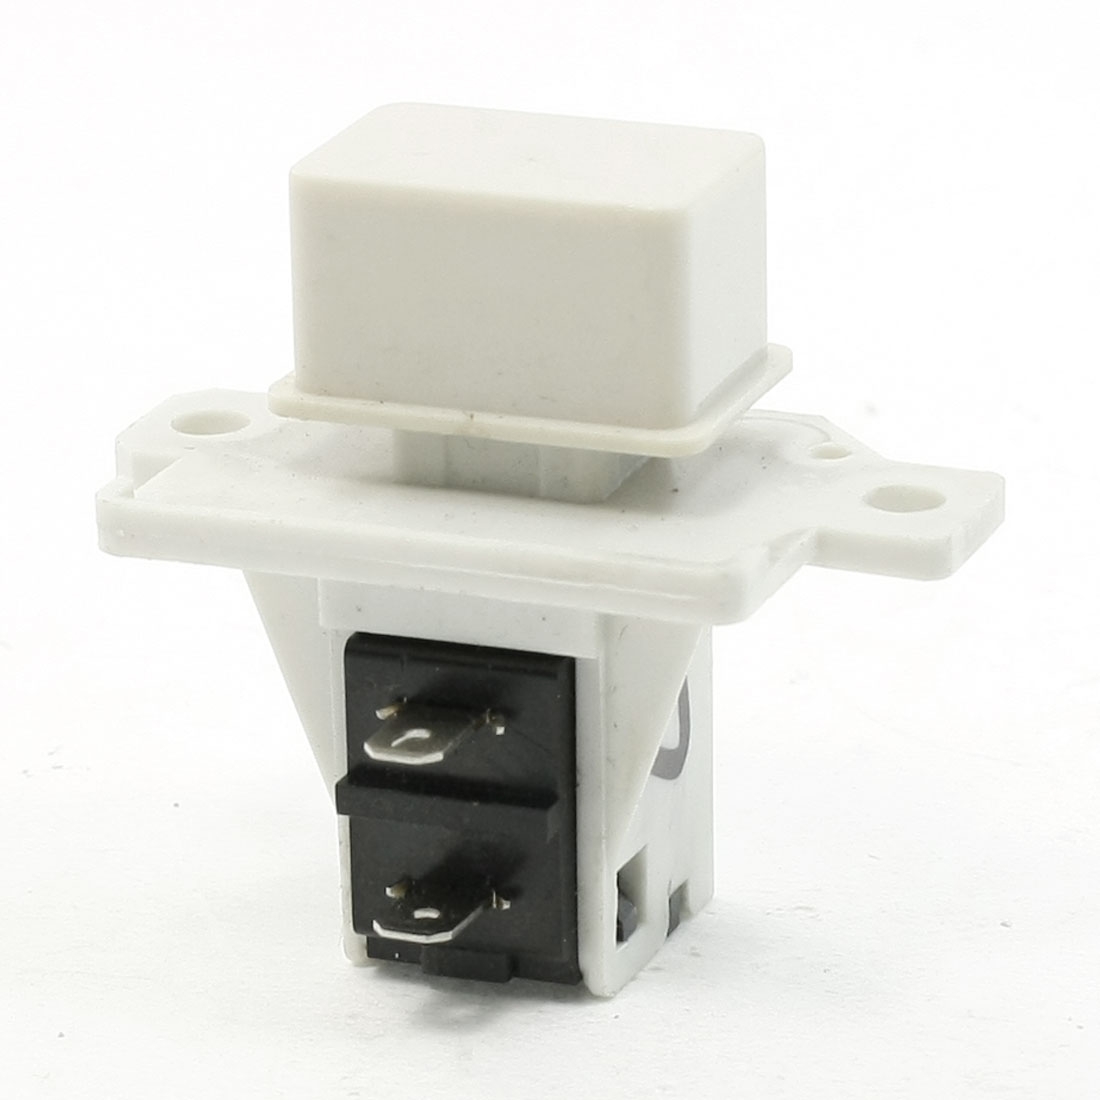 Replacement 250V 5A NO Rectangle Power Switch for Welli Washing Machine